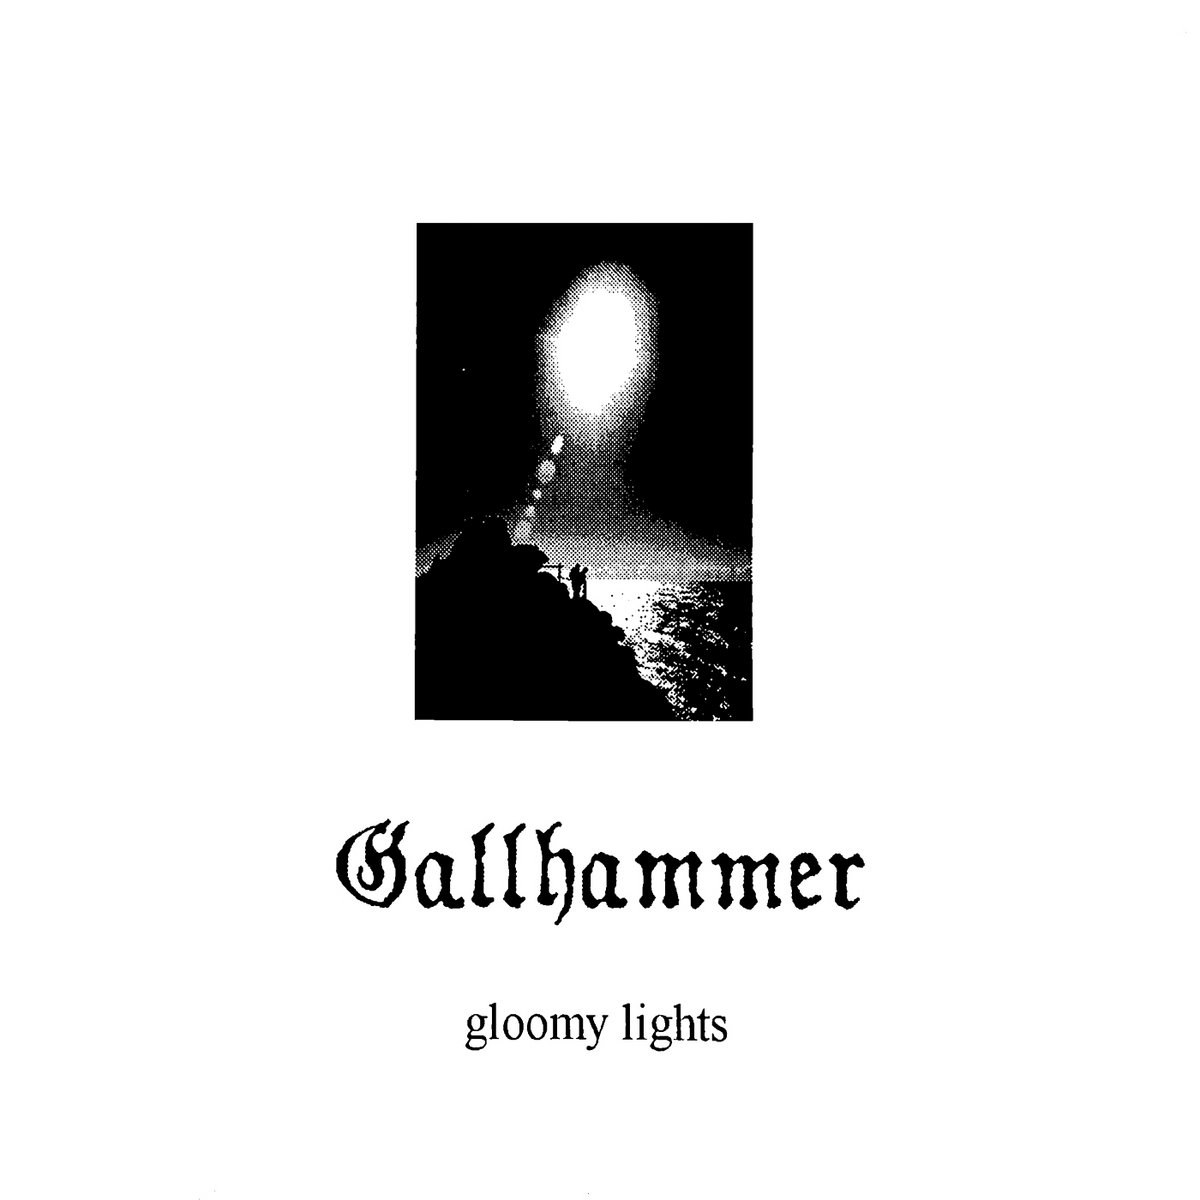 Review for Gallhammer - Gloomy Lights